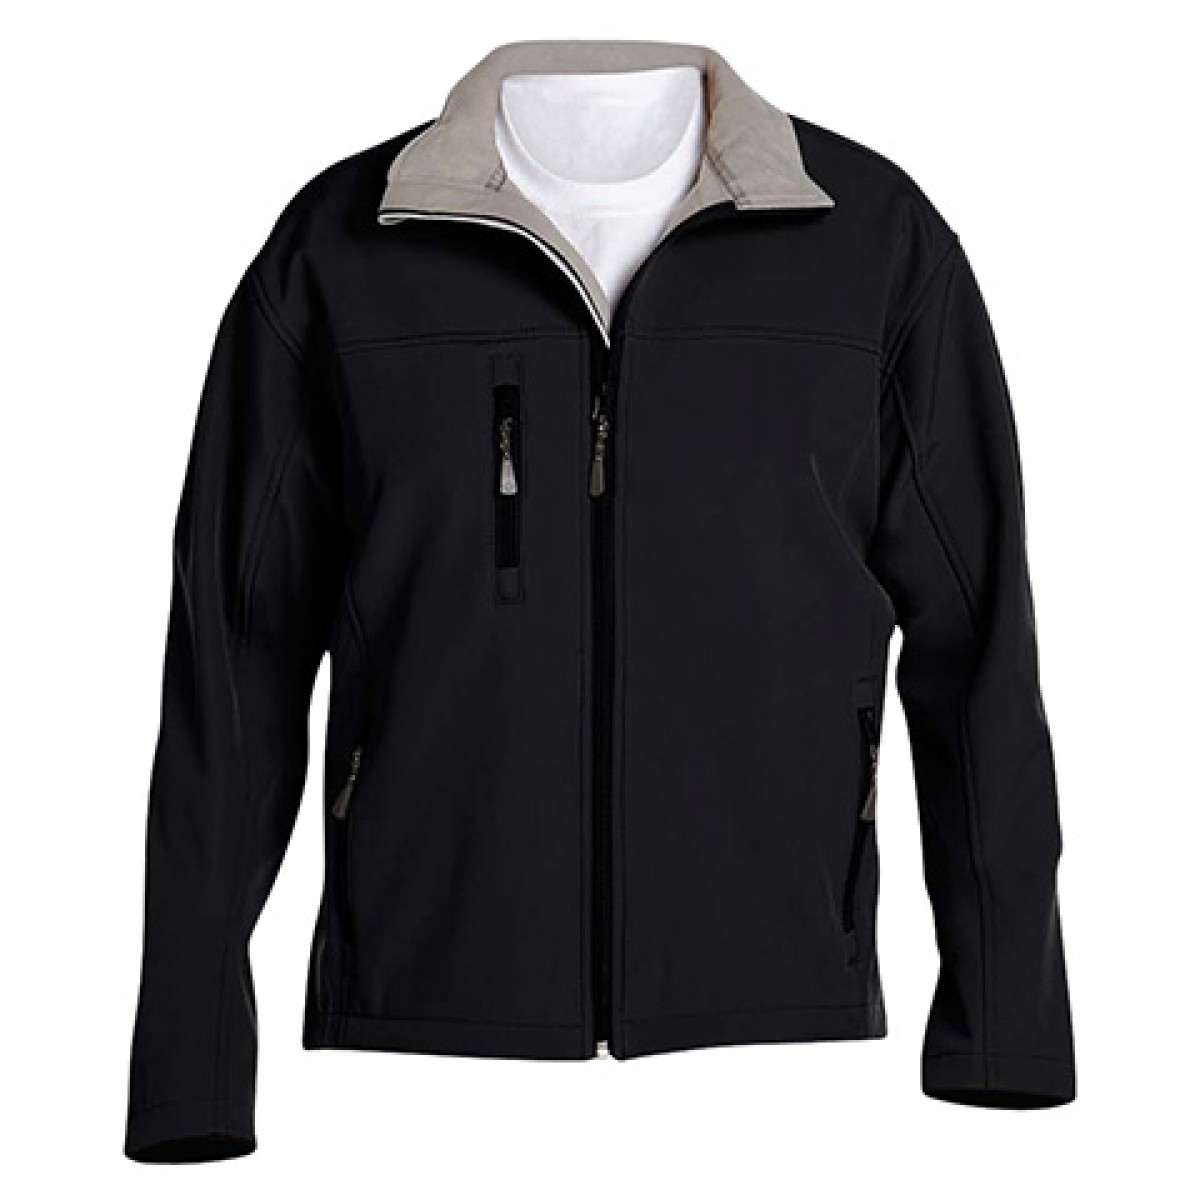 Men's Soft Shell Jacket-Black-2XL